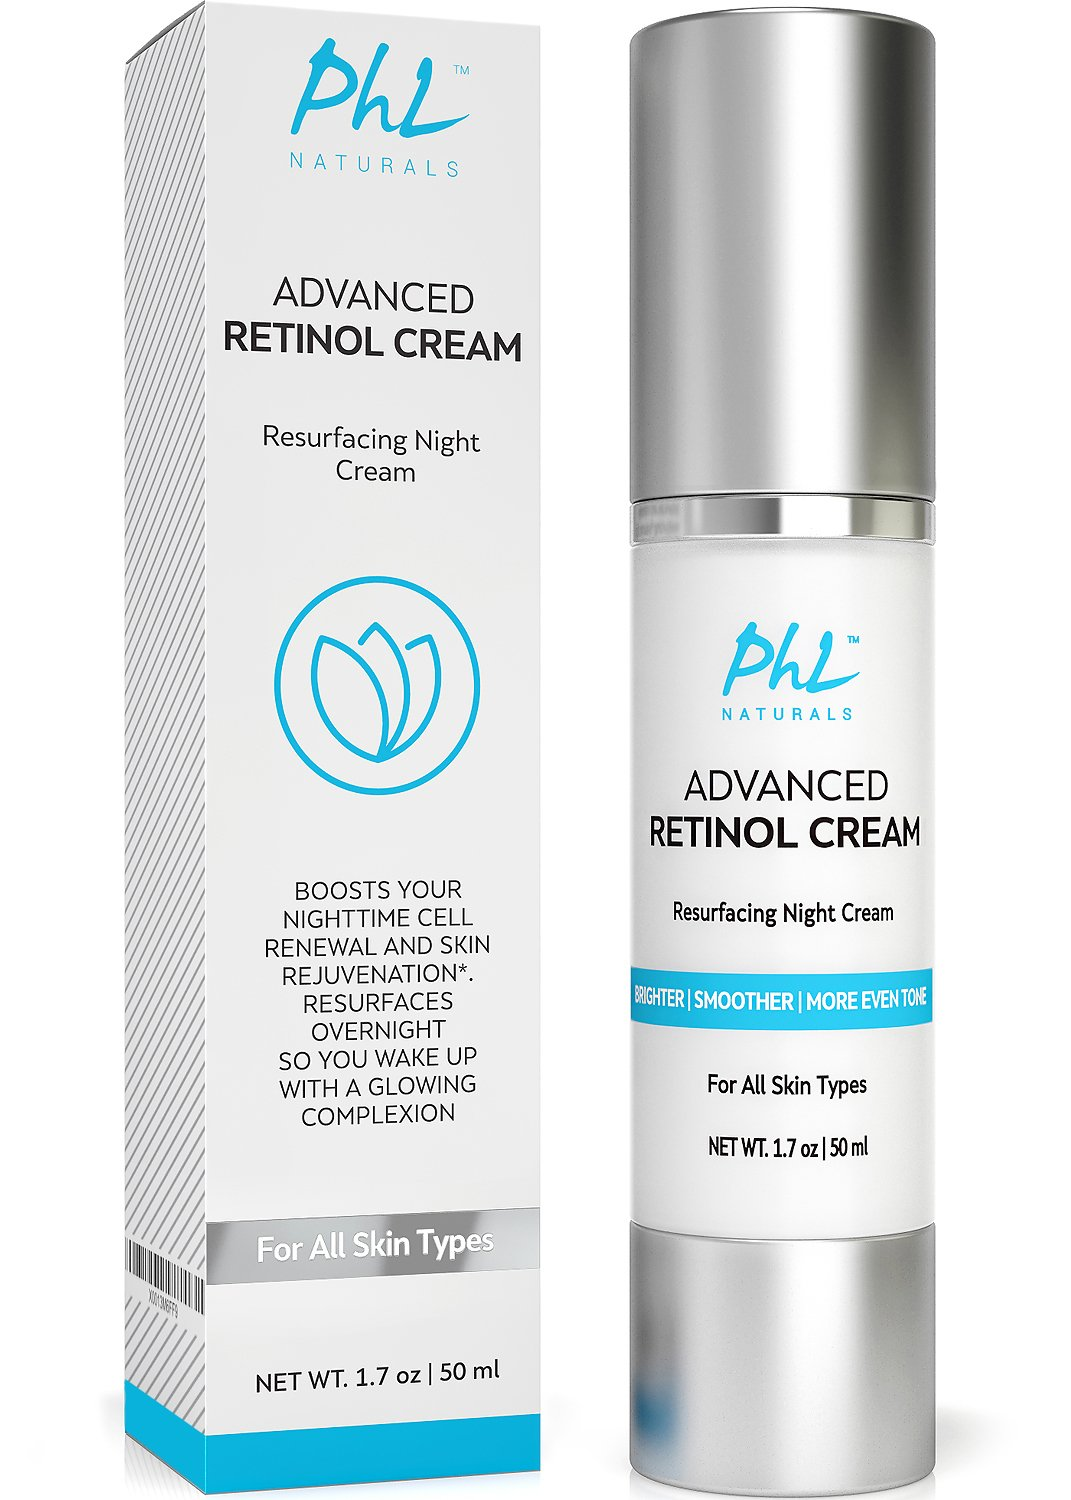 Retinol Cream Moisturizer for Face - with Hyaluronic Acid + Vitamin C & E - Anti Aging formula for Neck and Eye Area |Reduces Fine Lines, Wrinkles, Acne & Age spots. 1.7 fl.oz.